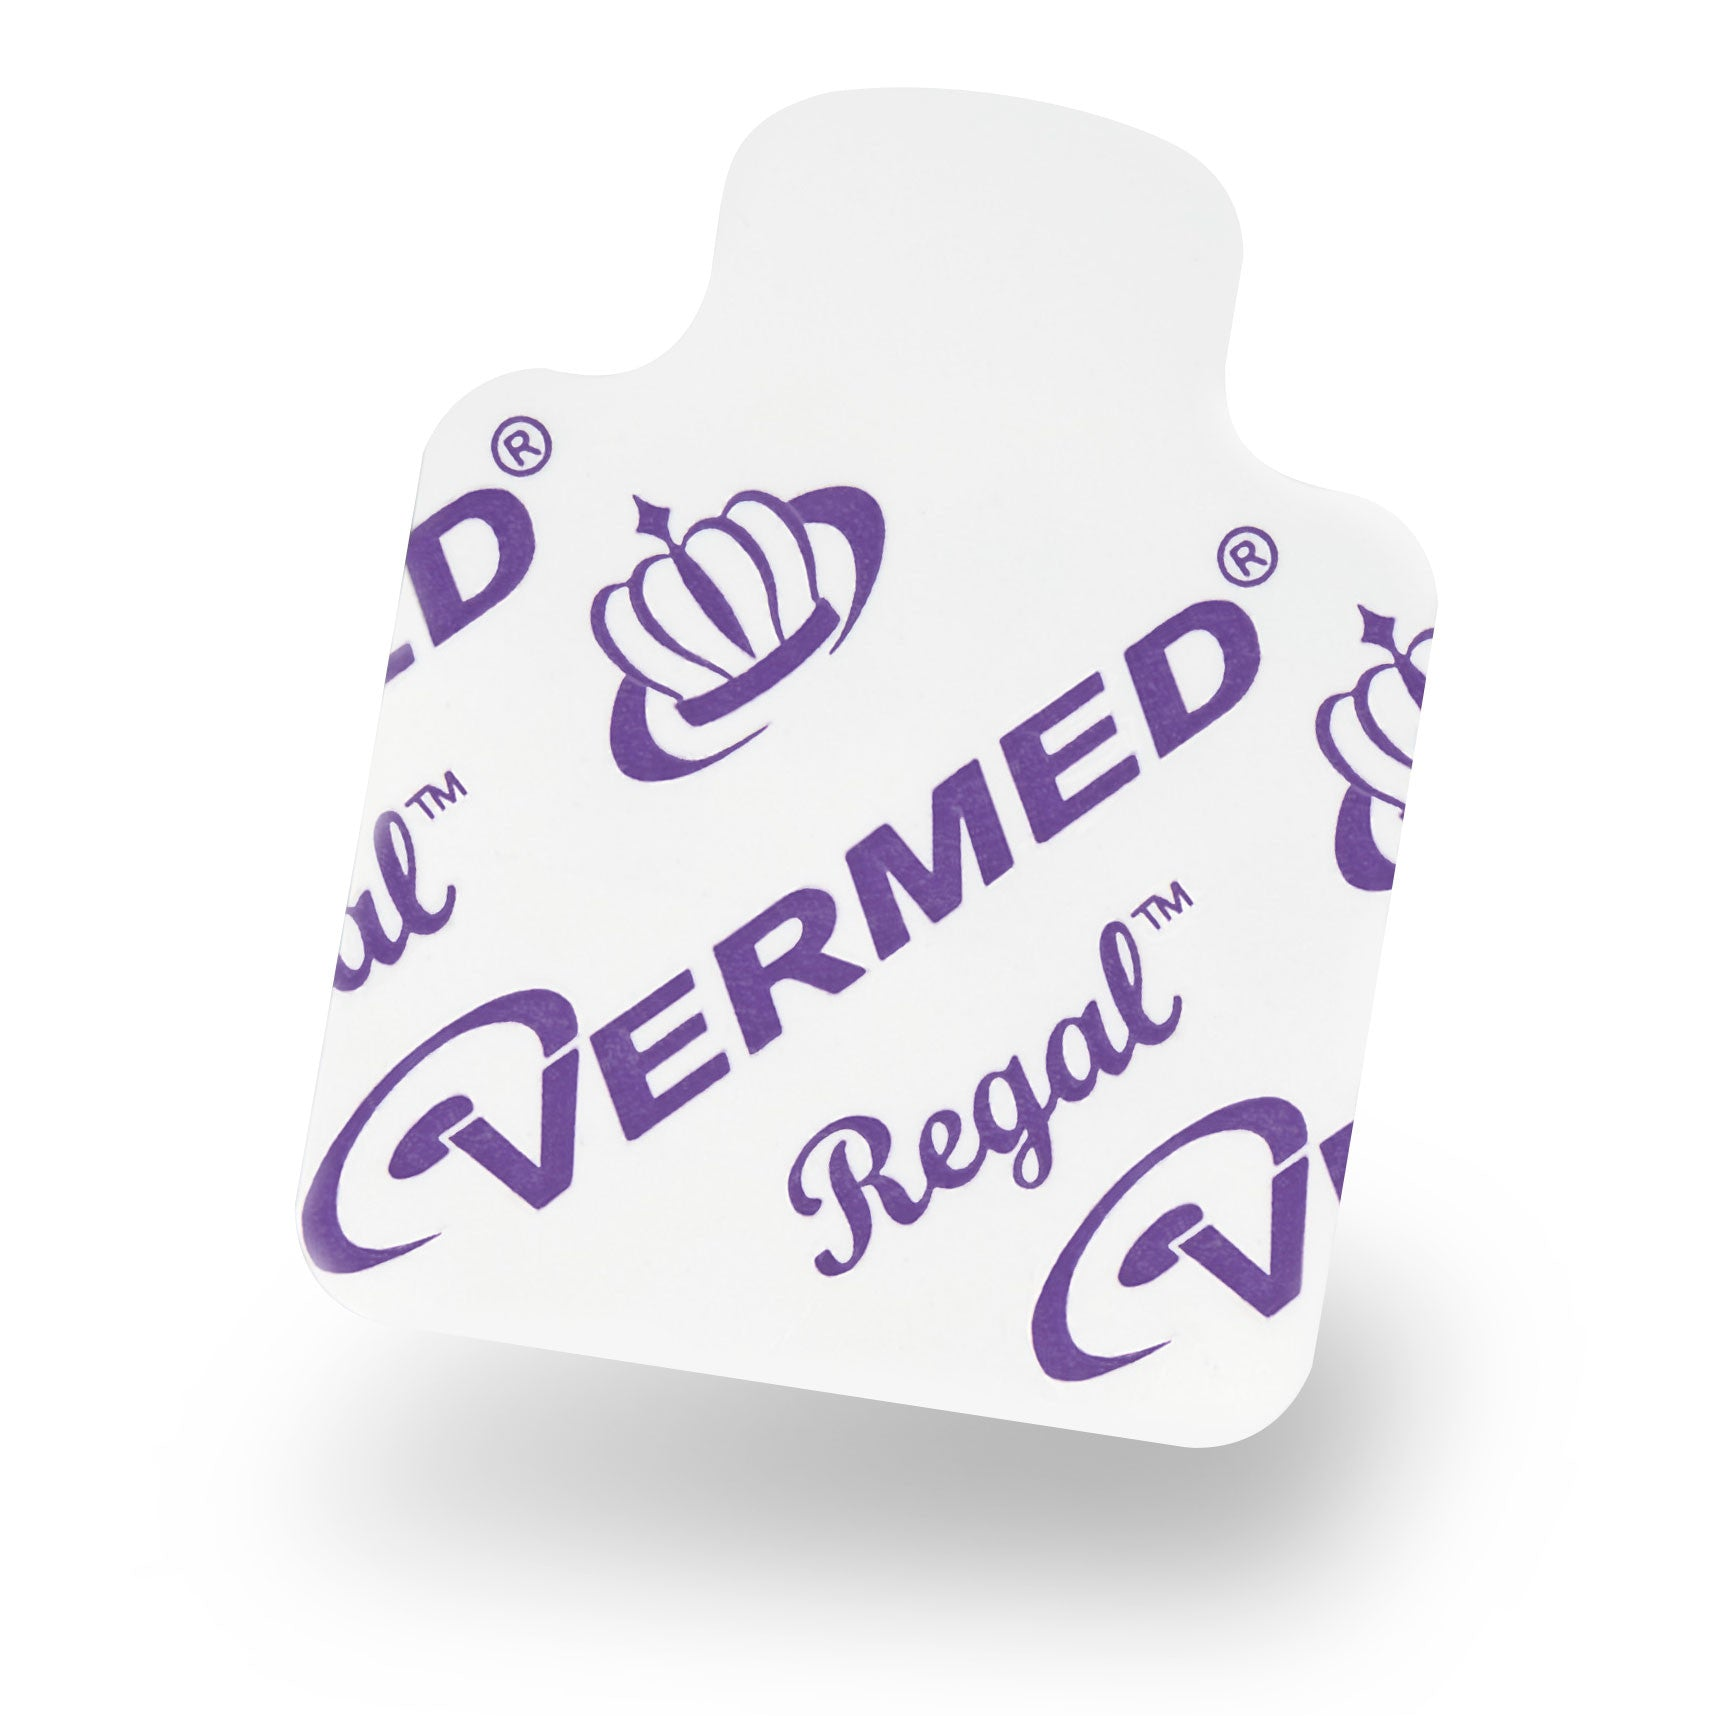 "Vermed A100023 Regal™ - Diagnostic Resting ECG Tab Electrode, Solid Gel, 1 1/8"" x 1 7/16"""